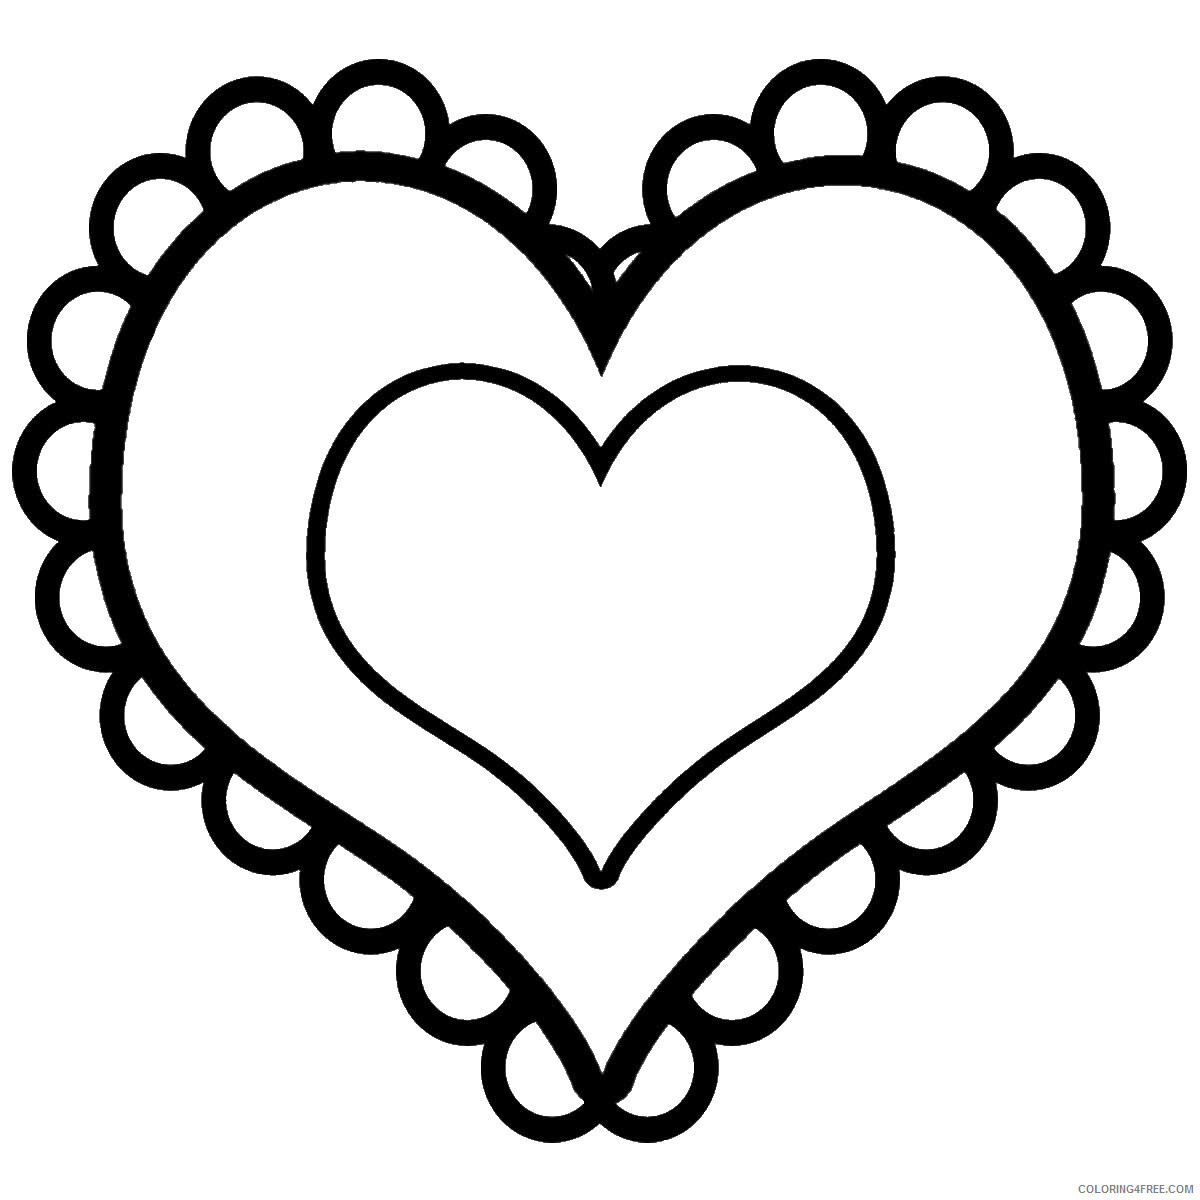 Hearts Coloring Pages hearts_cl_12 Printable 2021 3245 Coloring4free